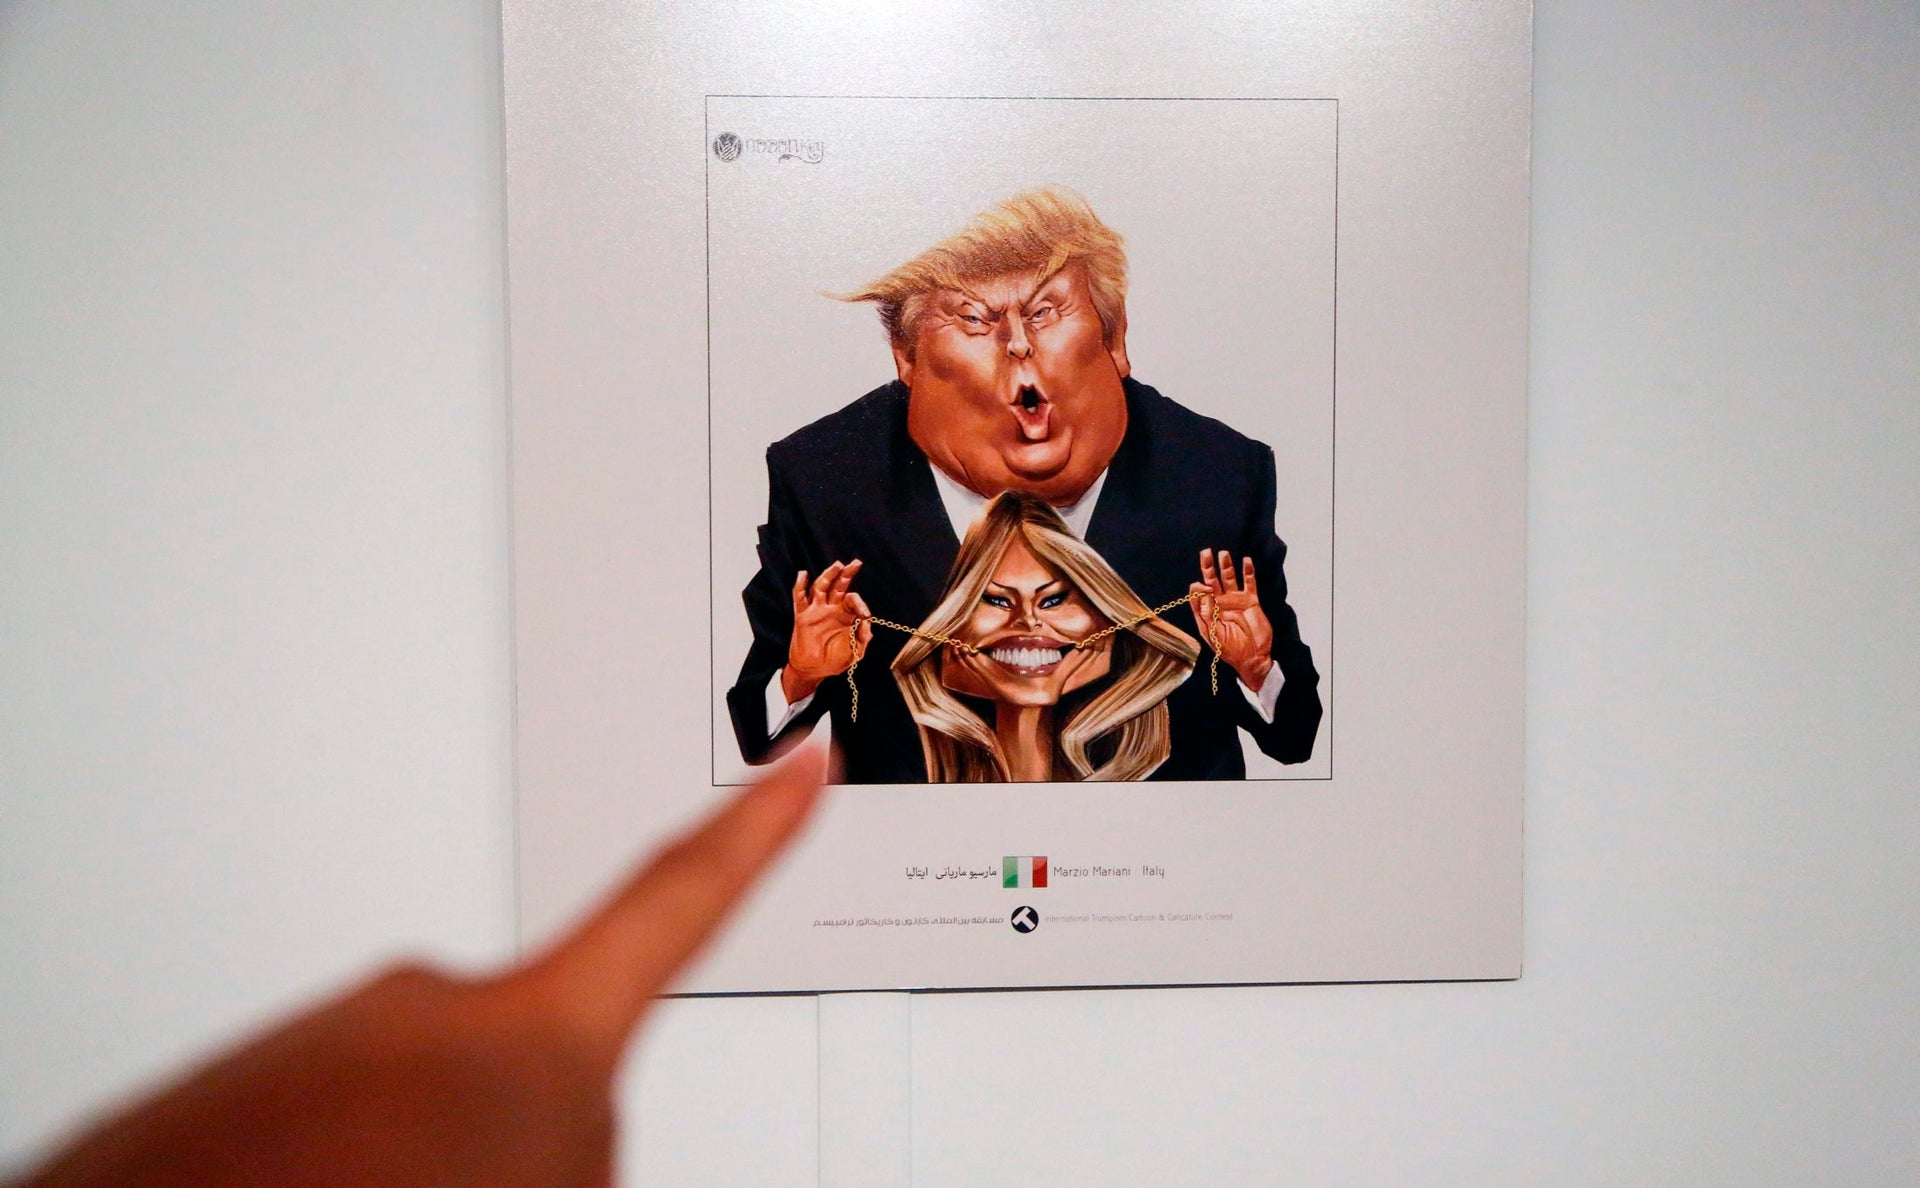 A picture taken on July 3, 2017 shows a cartoon of US President Donald J. Trump and First Lady Melania Trump on display at an exhibition of the Islamic Republic's 2017 International Trumpism cartoon and caricature contest, in the capital Tehran.